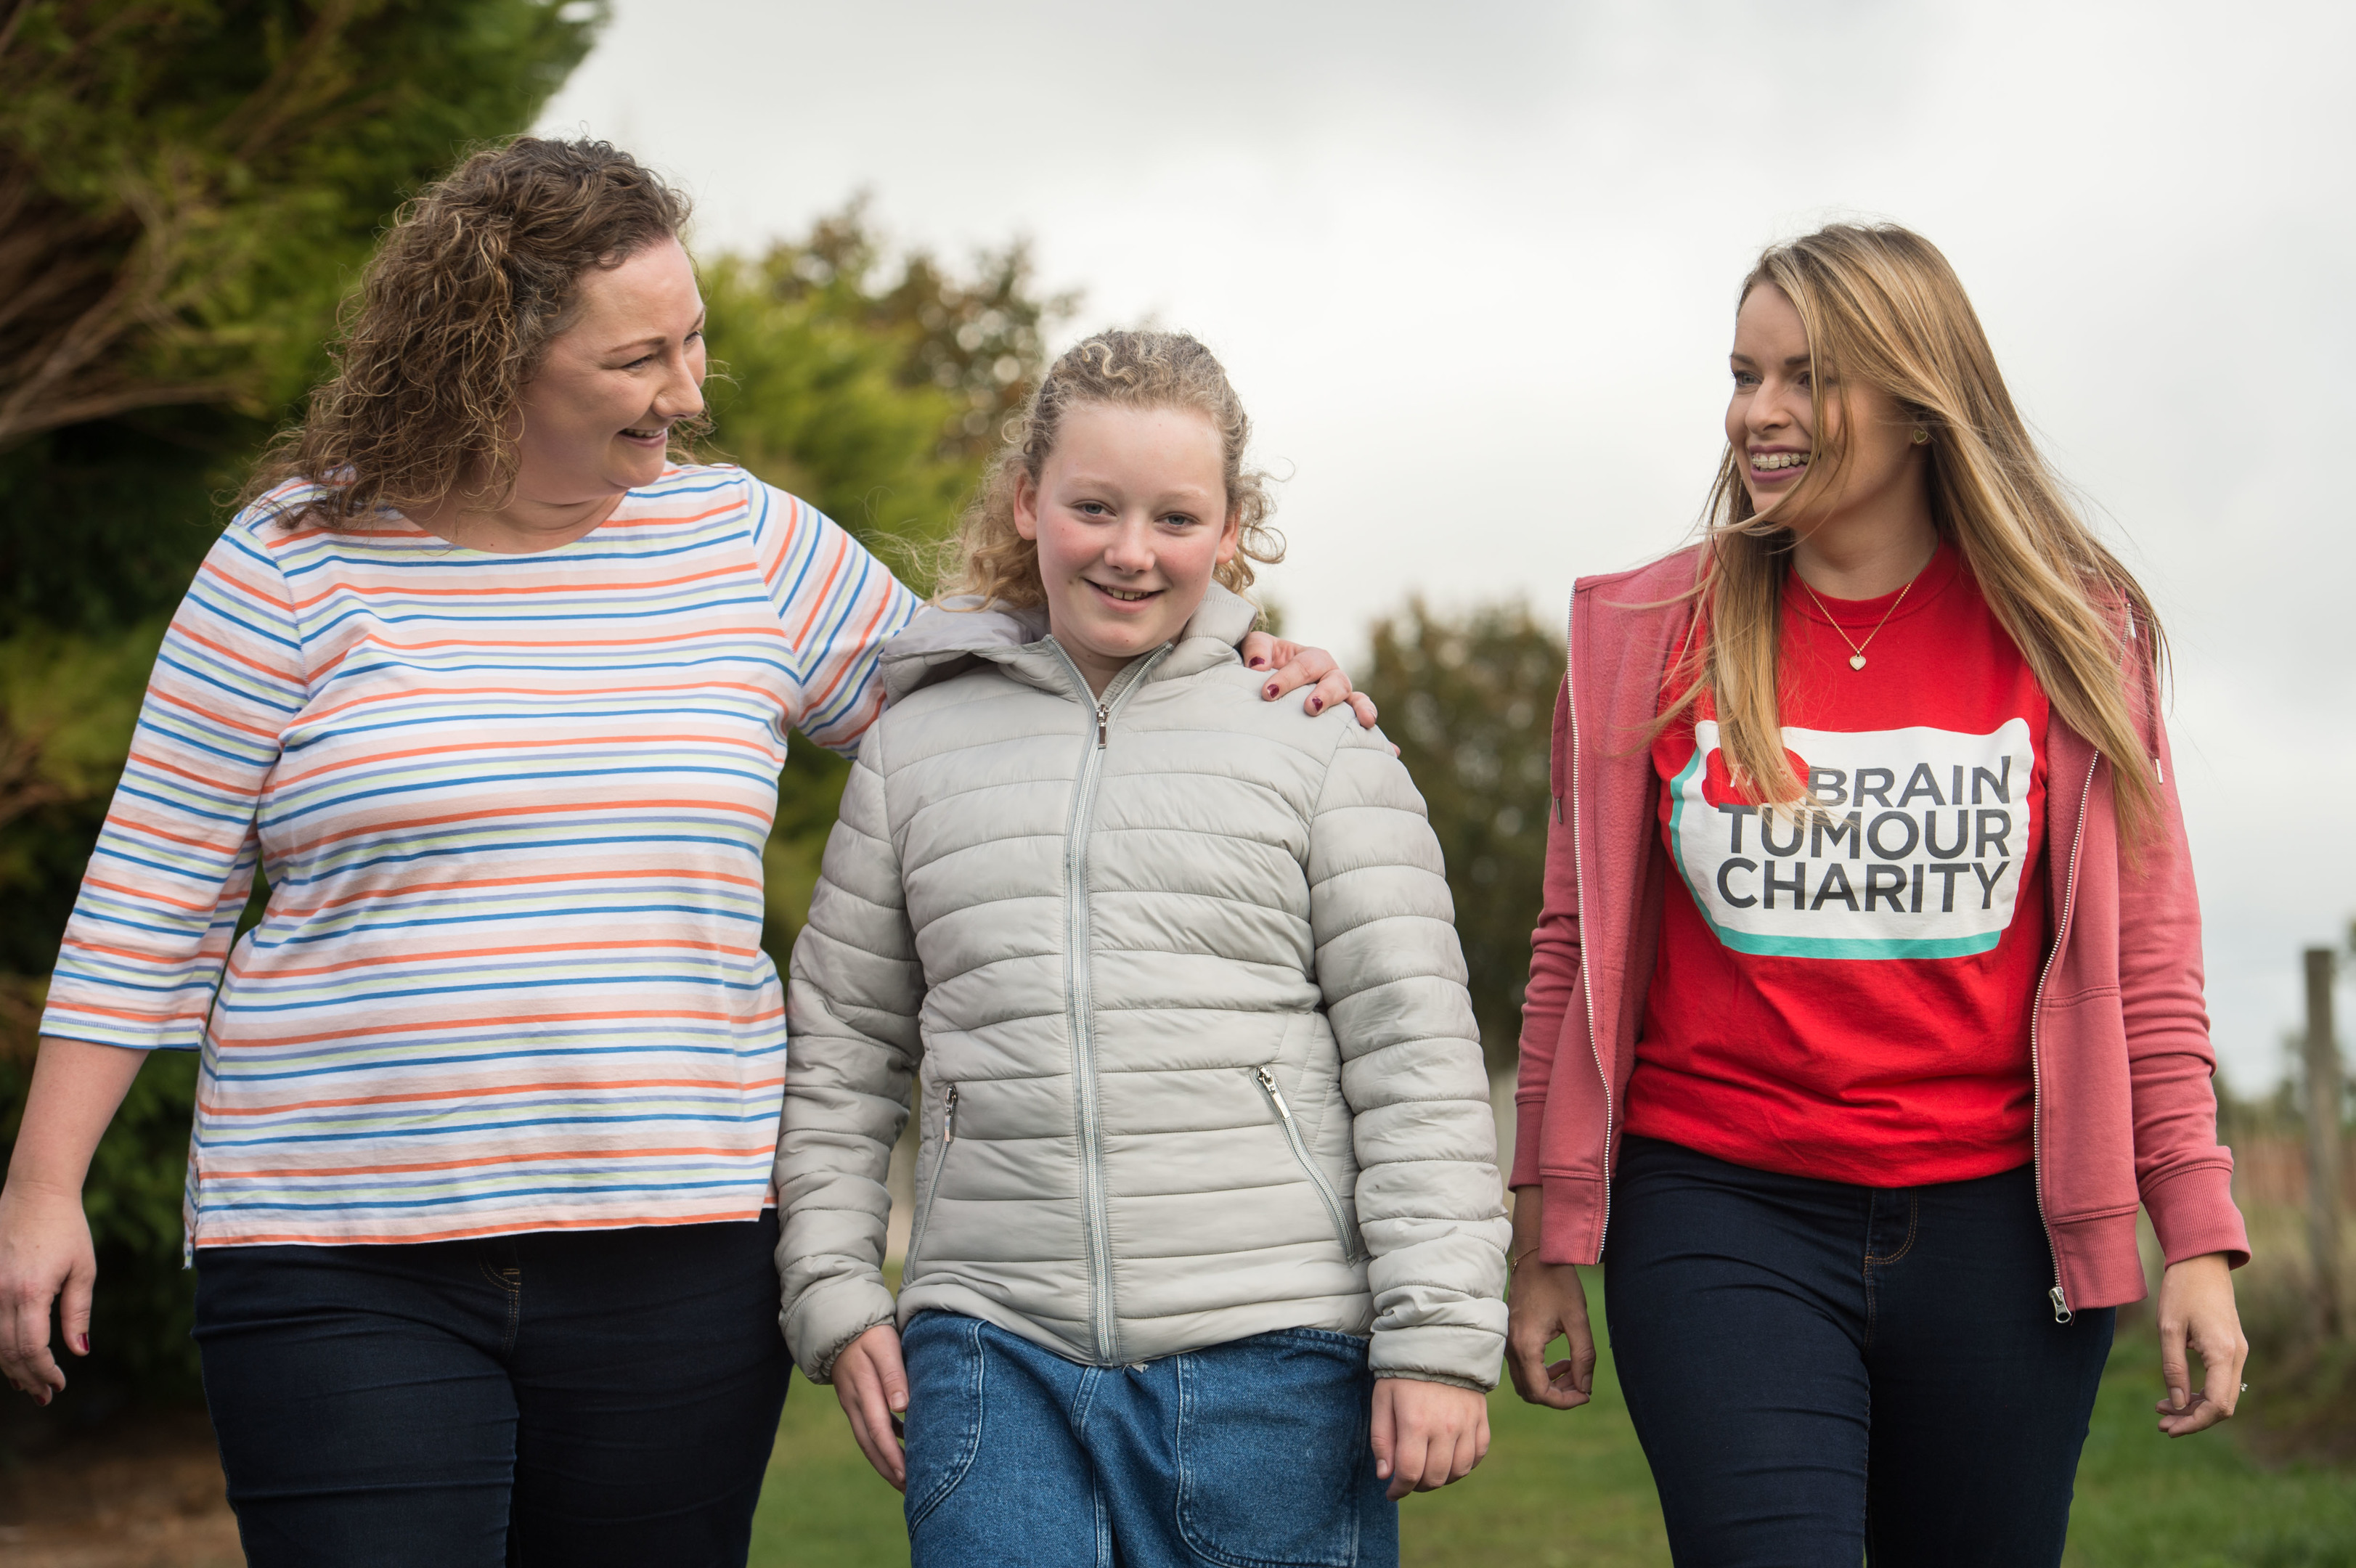 Maggie Walker (L) with her daughter Sarah and The Brain Tumour Charity Community Fundraiser Katie Grier